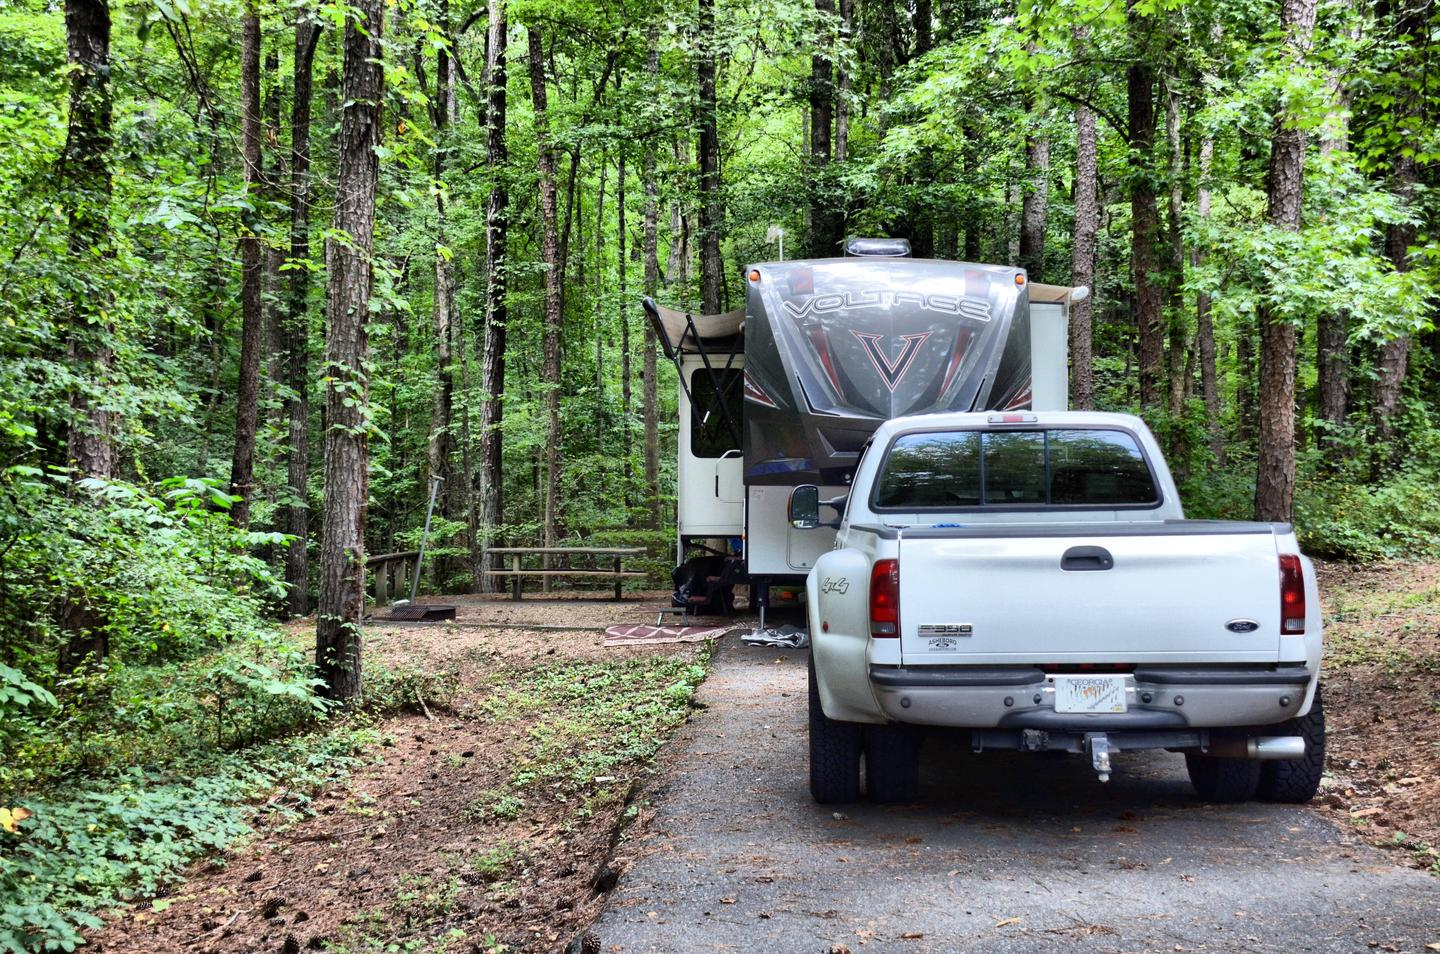 Awning-side clearance.Payne Campground, campsite 55.